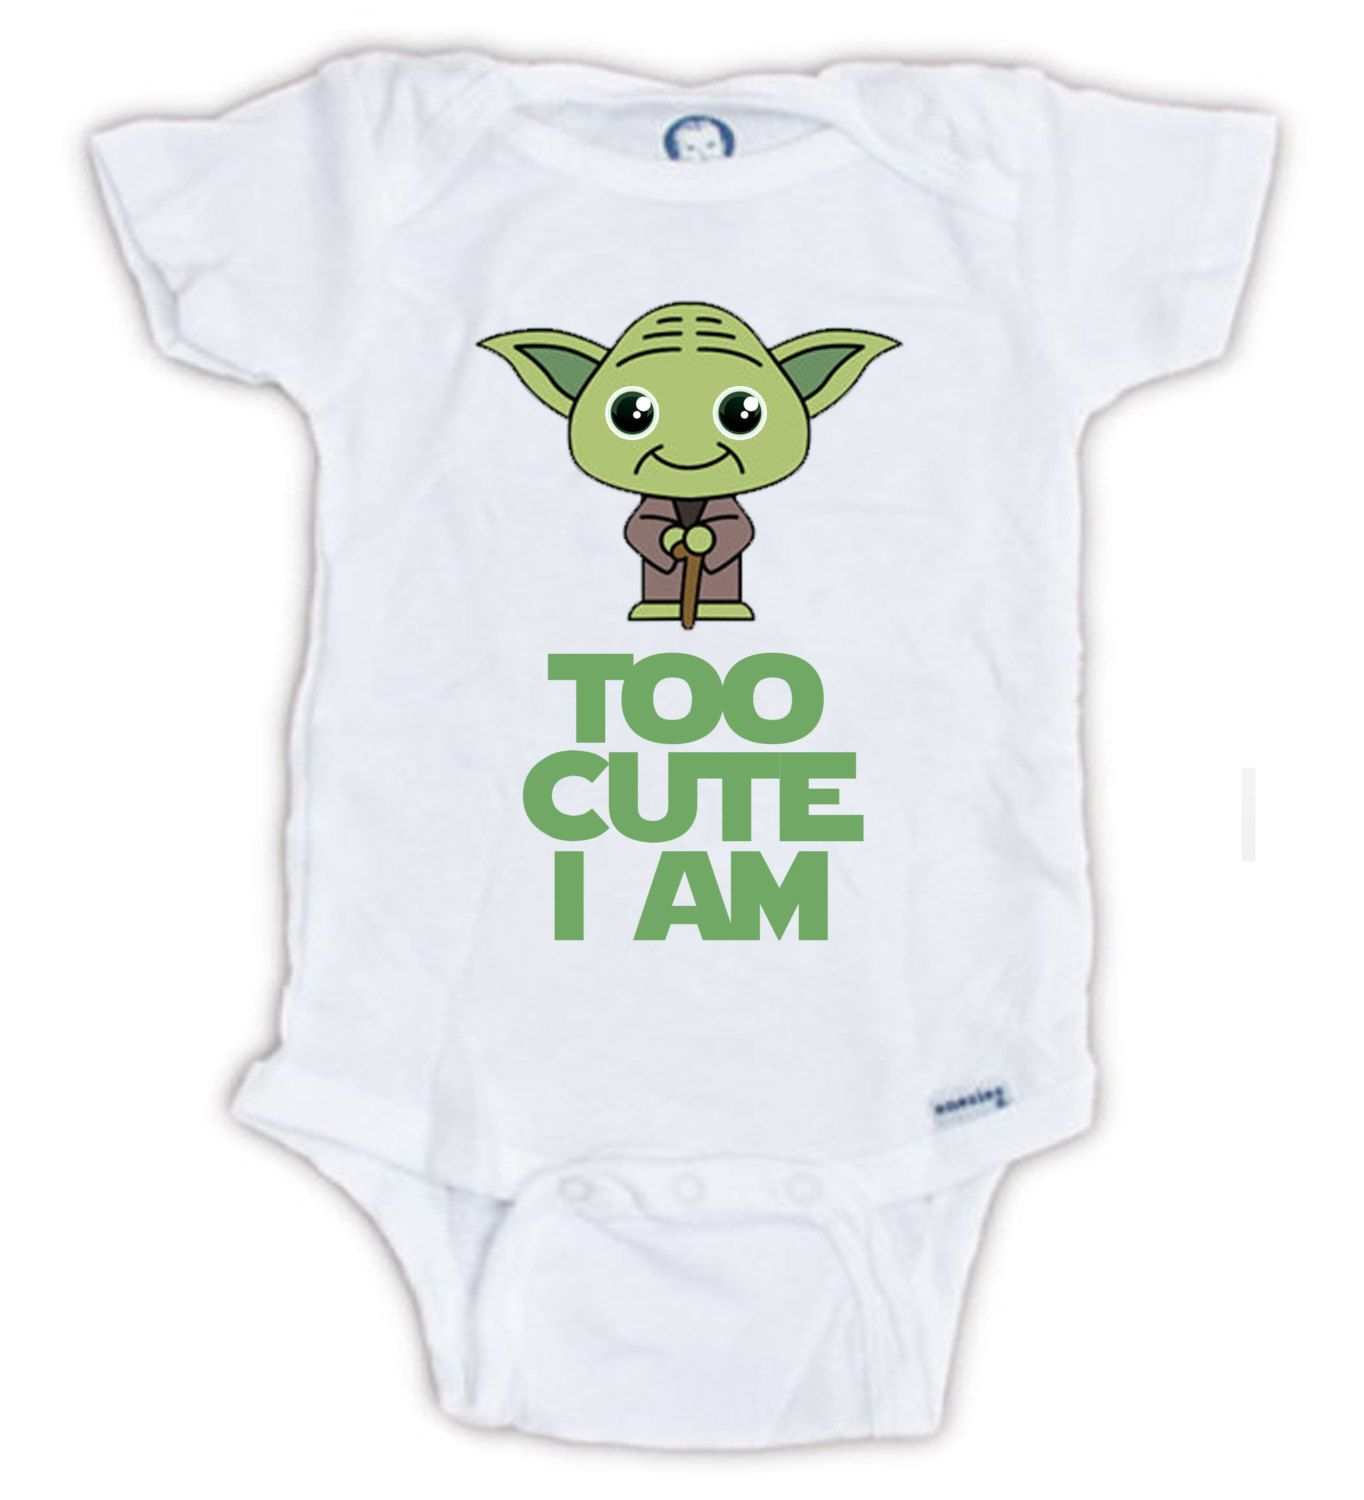 Yoda esie Star Wars Star Wars birthday shirt Star Wars baby